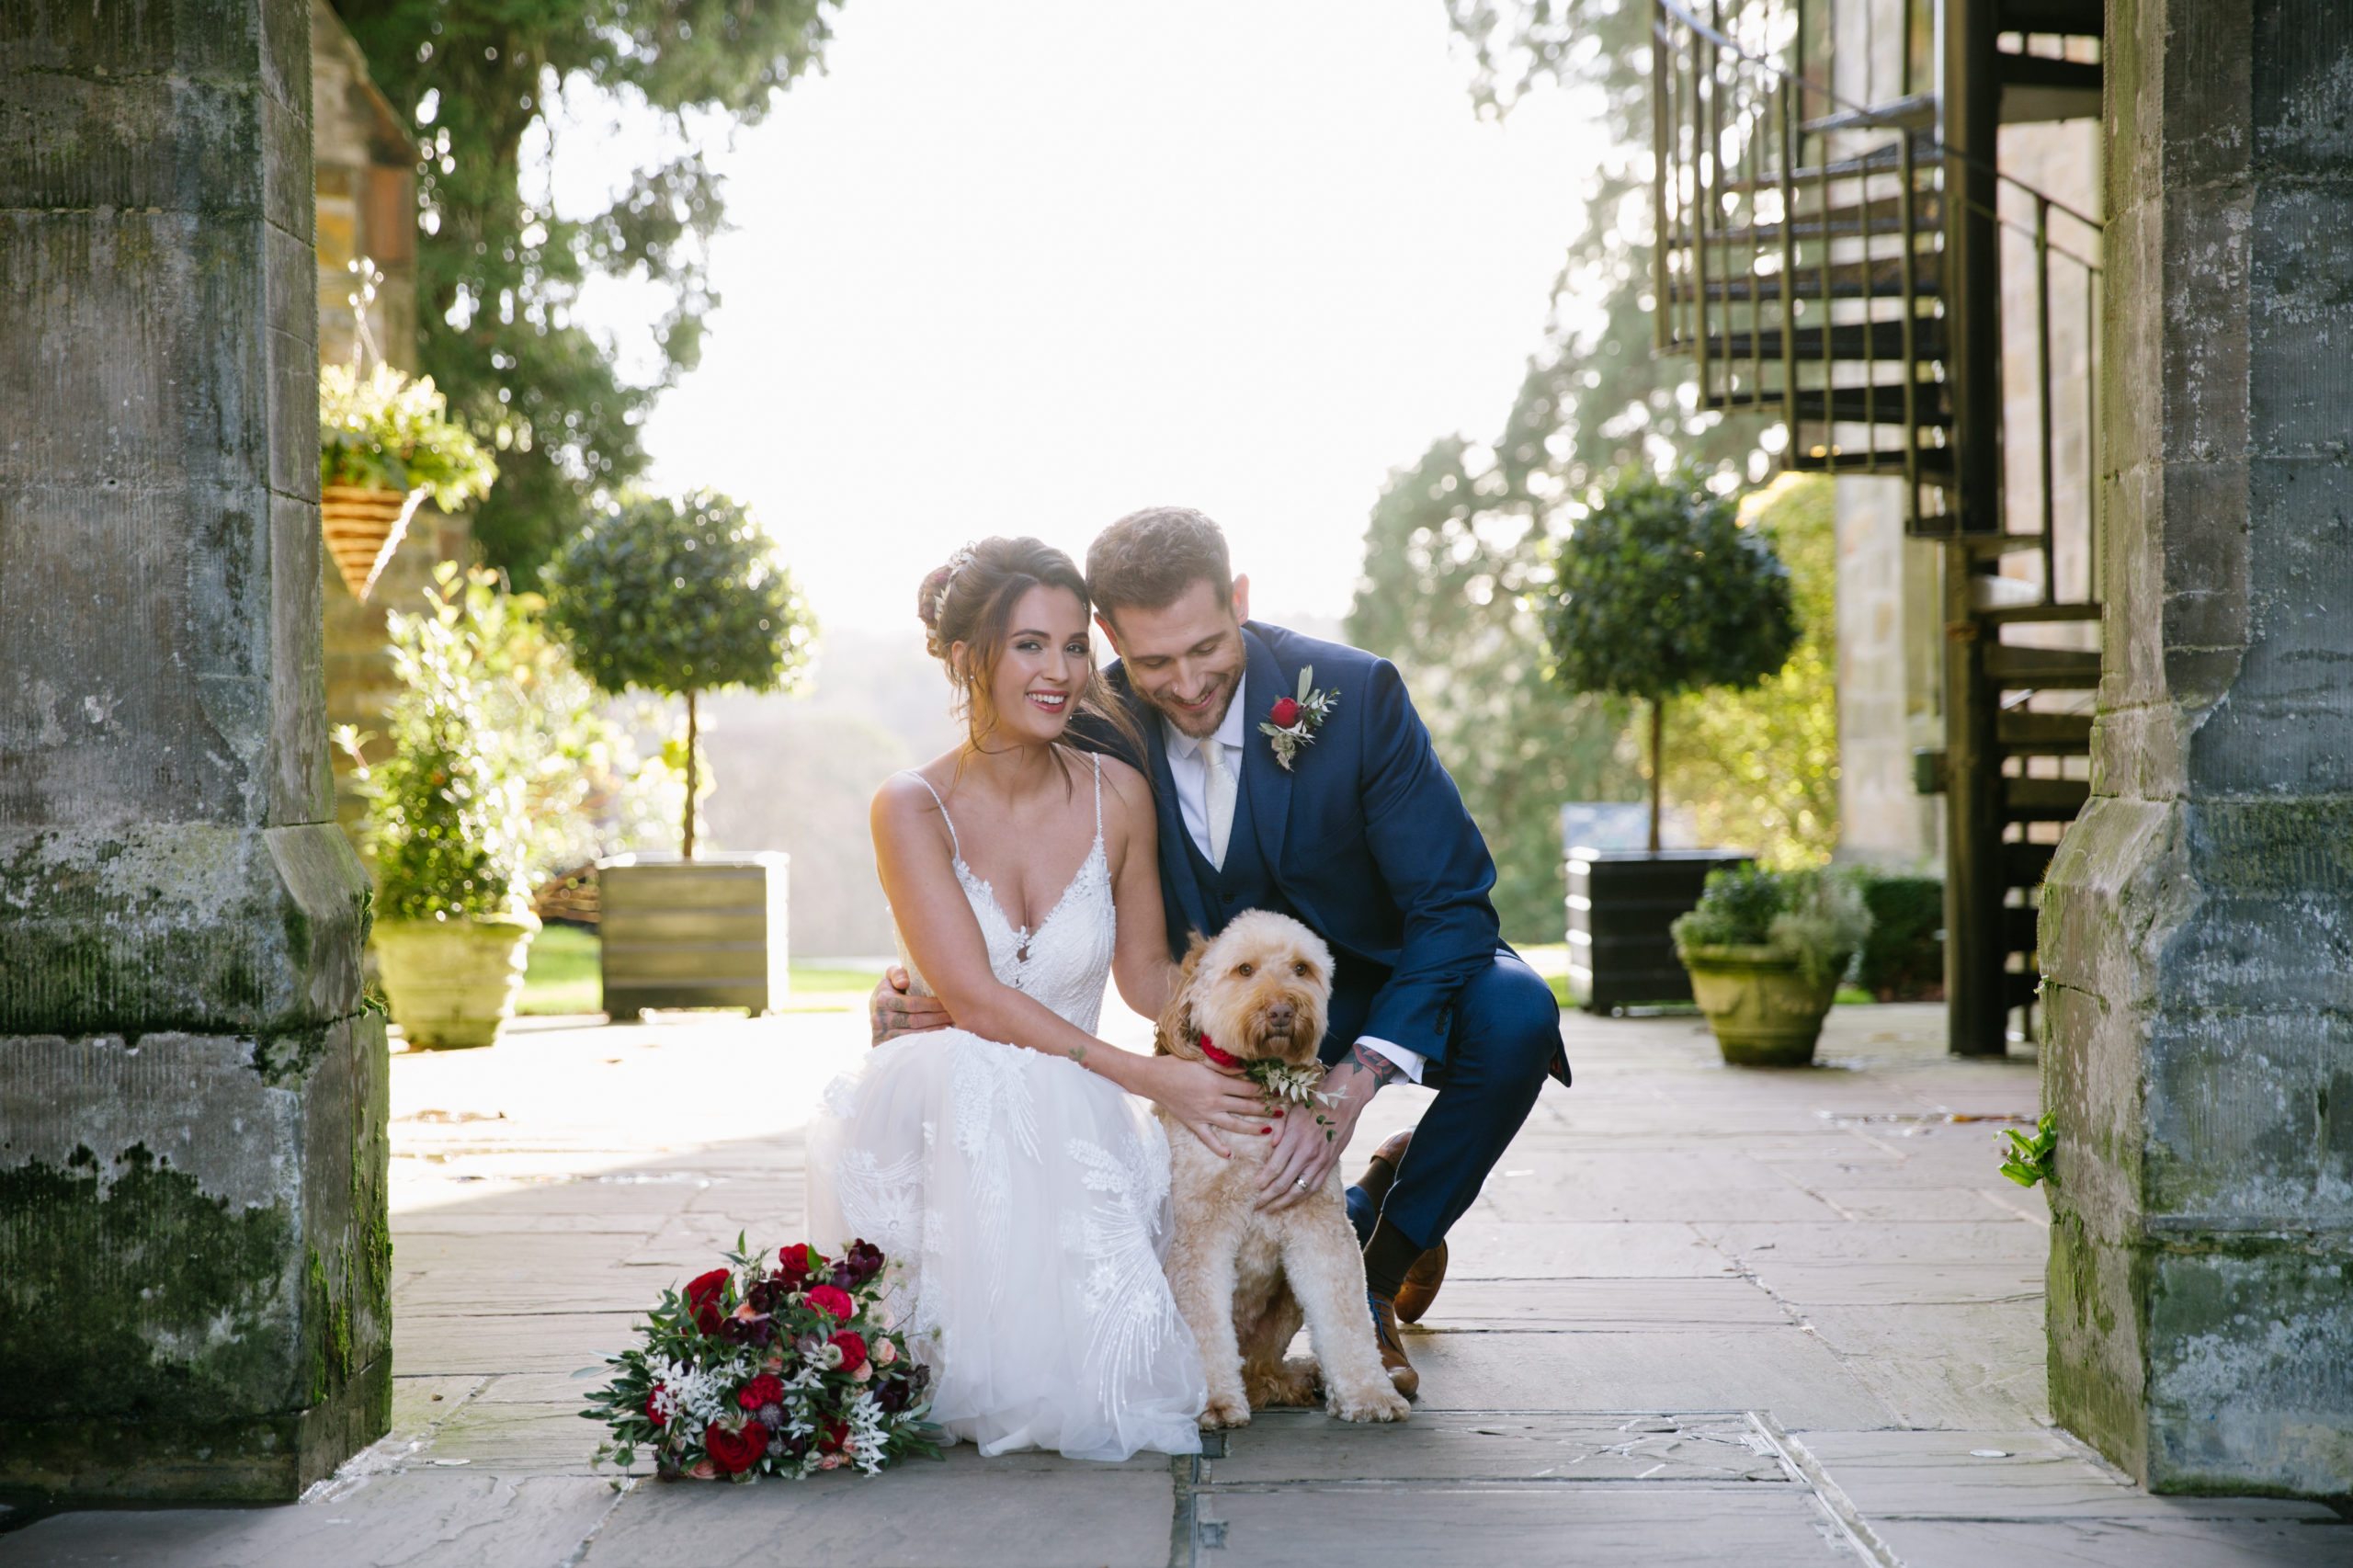 Wedding Elopement with Doggy